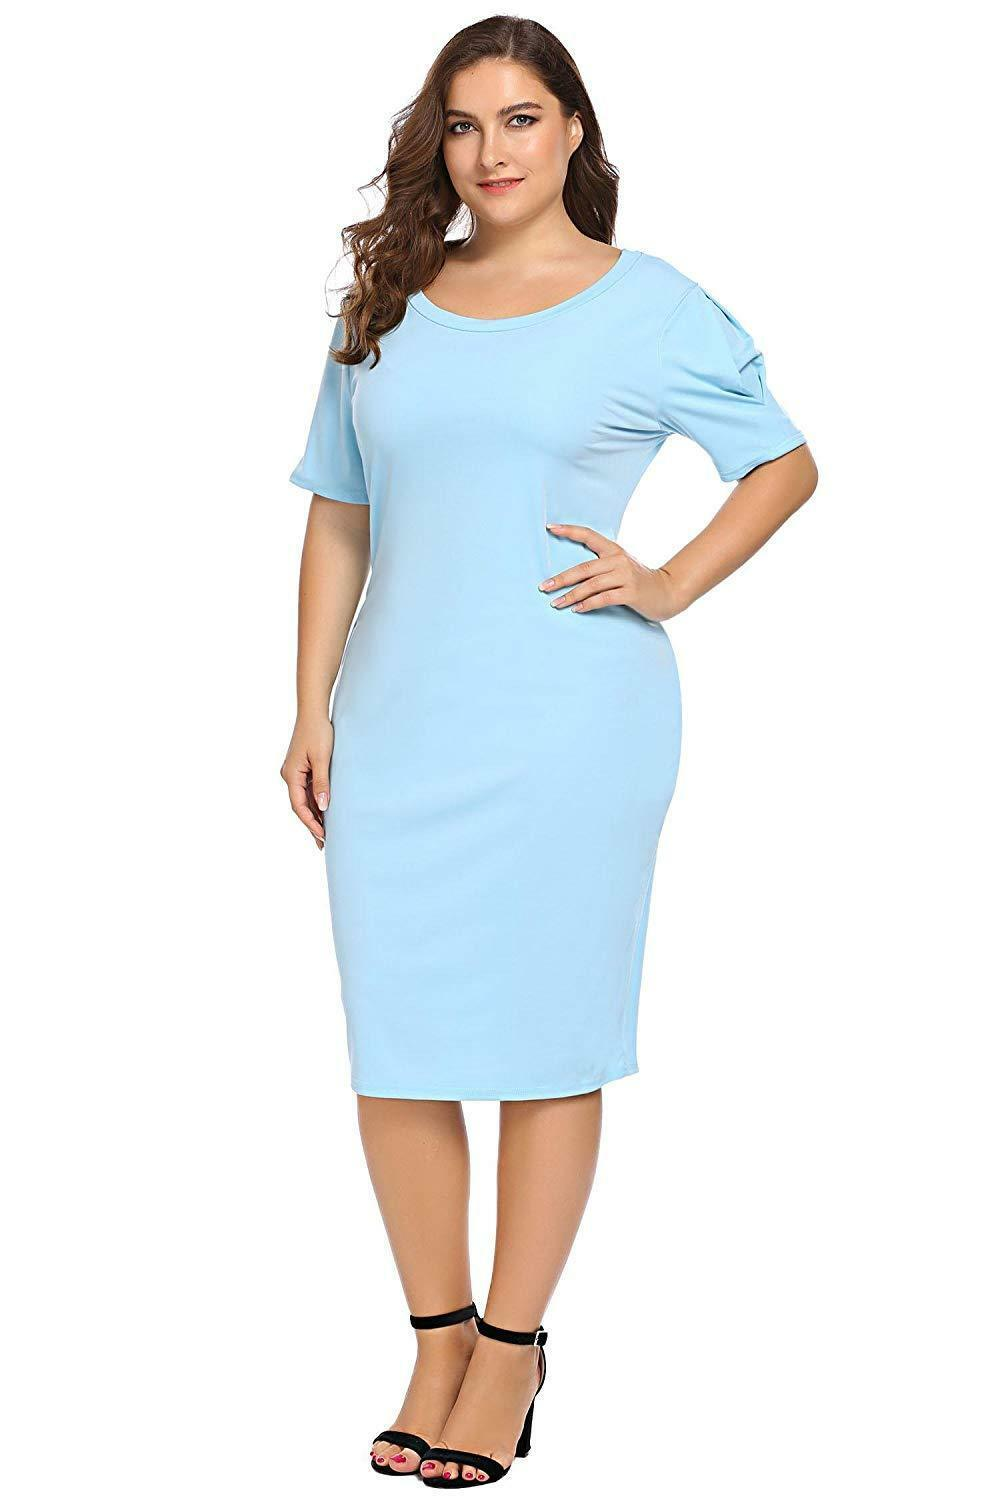 Zeagoo Women Plus Size Loose Fit Short Sleeve O-Neck Casual Midi Dress